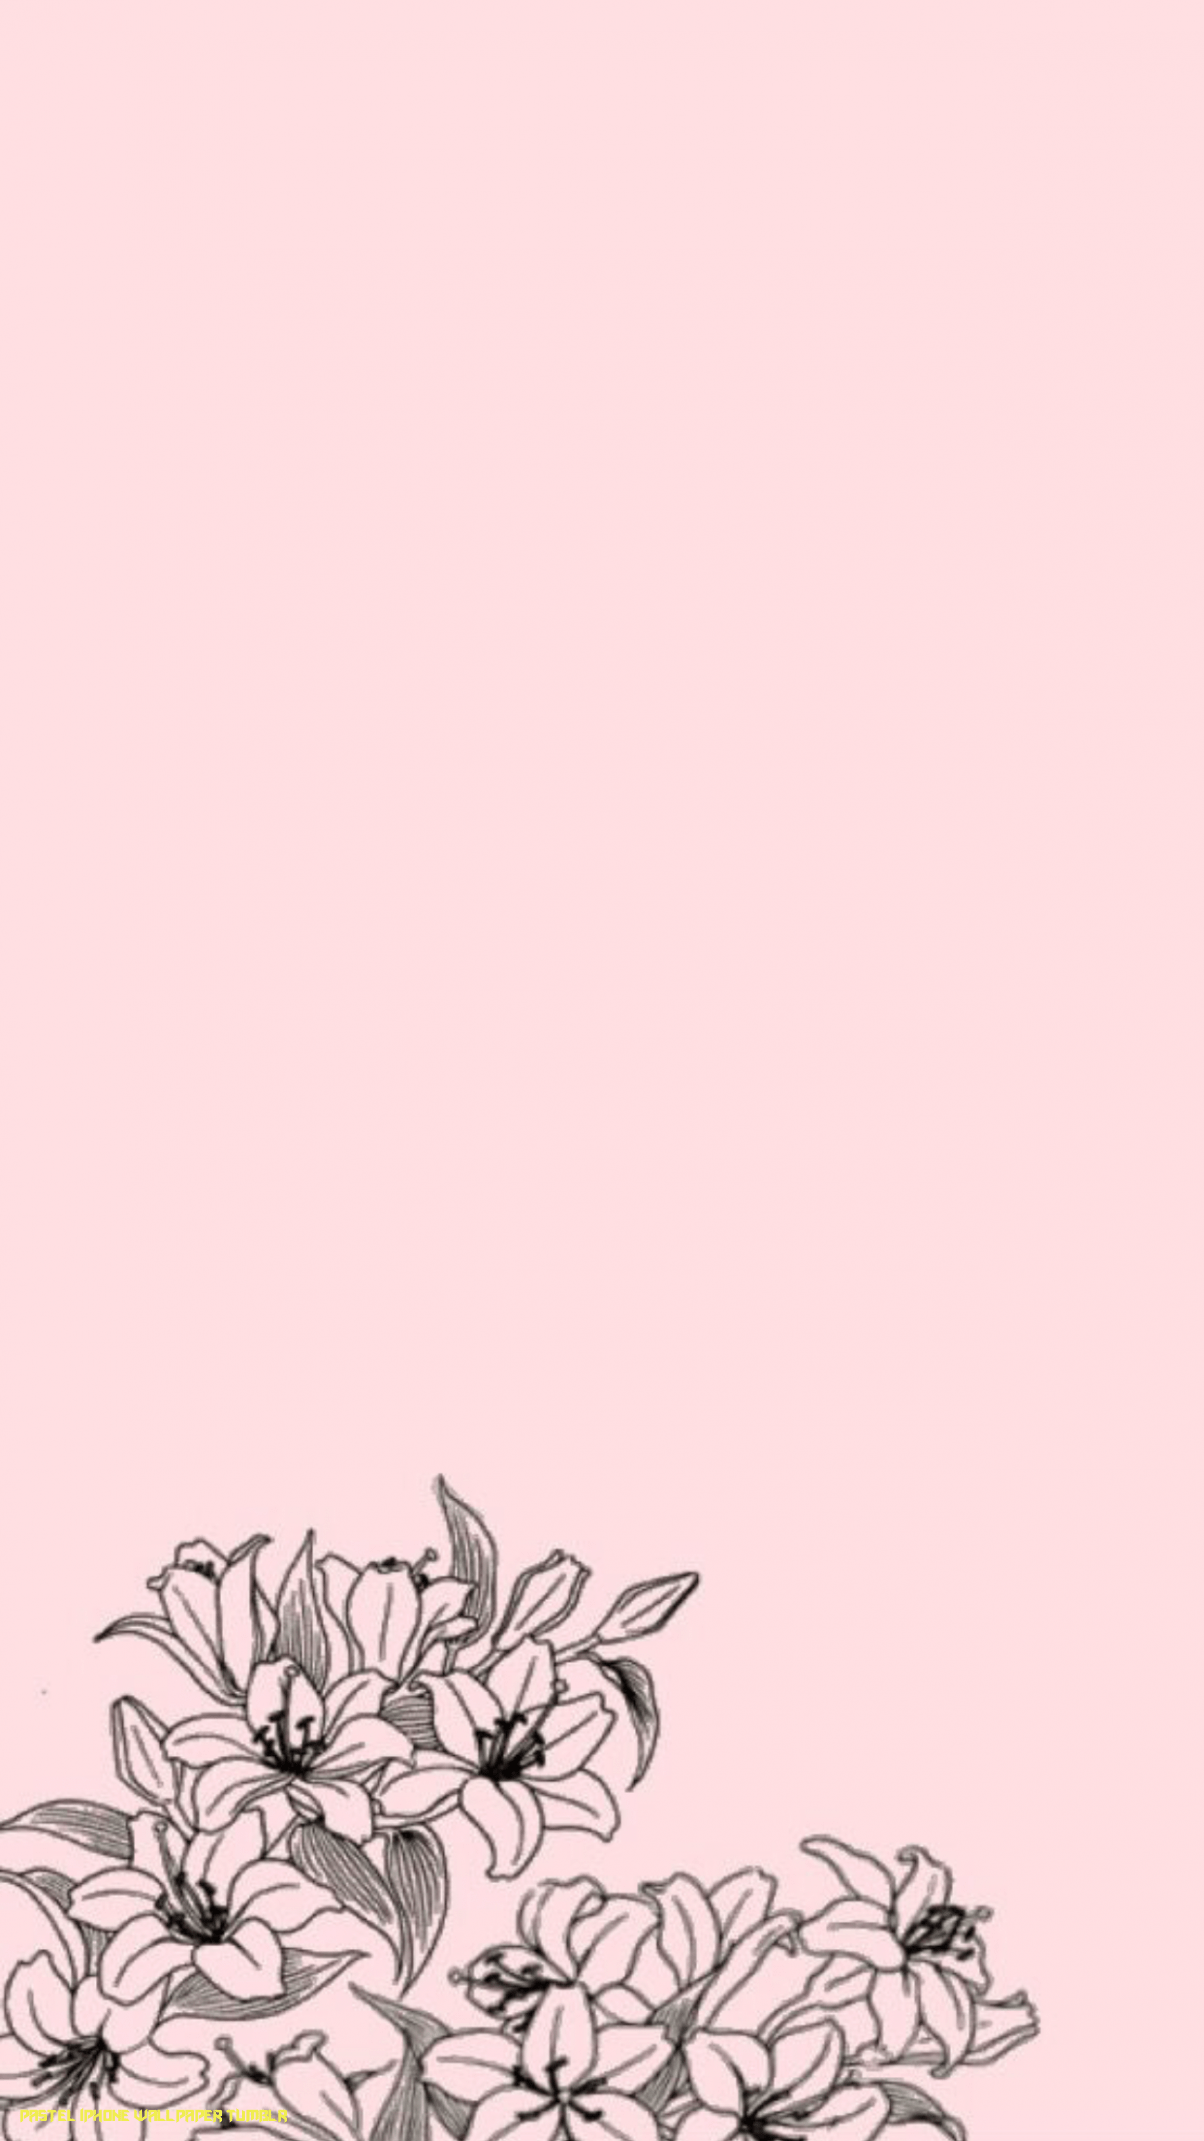 12 Unexpected Ways Pastel Iphone Wallpaper Tumblr Can Make Your Life Better Pastel I In 2020 Pastel Iphone Wallpaper Flower Background Wallpaper Aesthetic Wallpapers